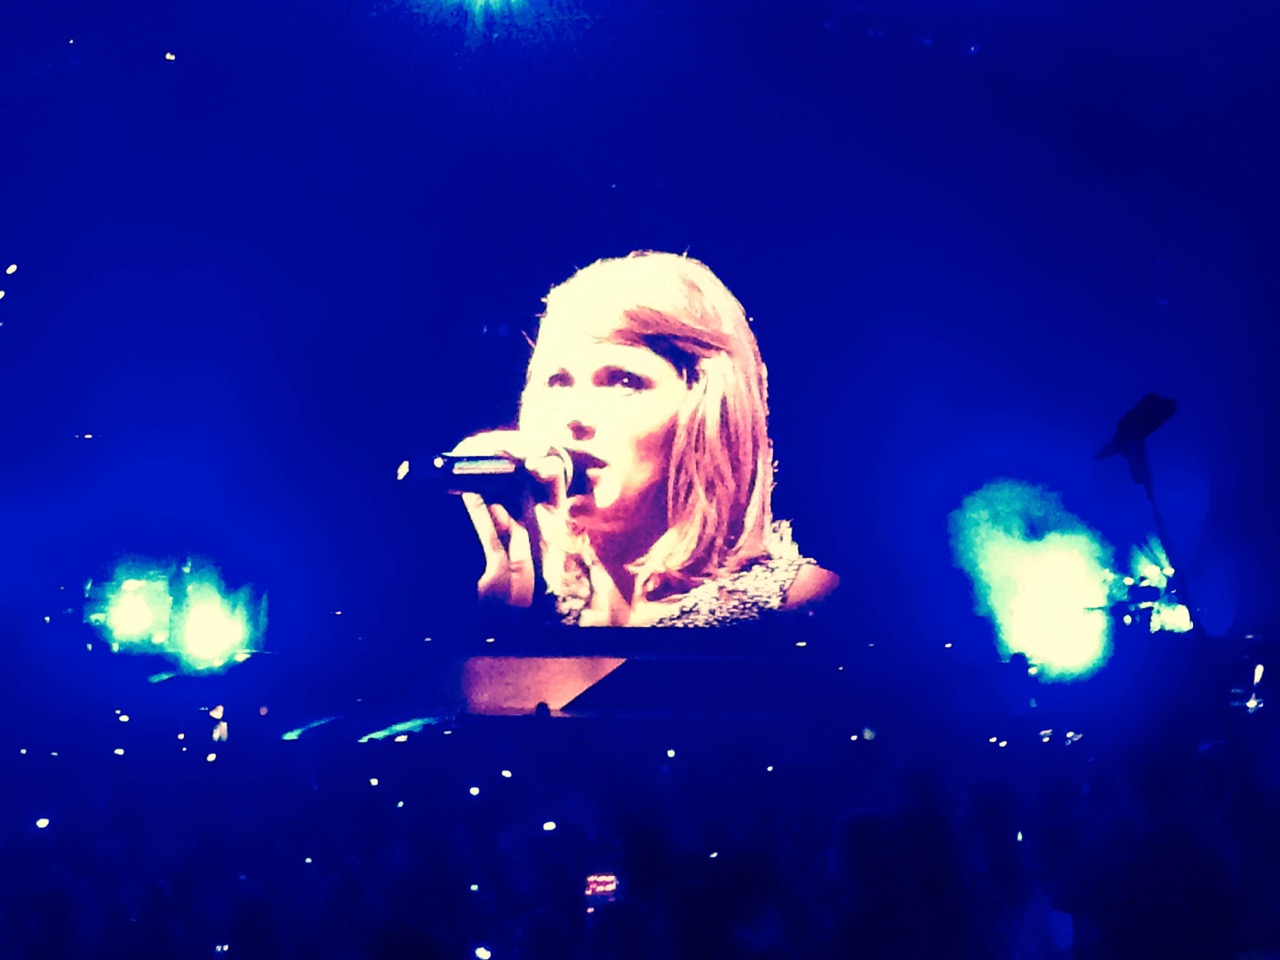 taylor-swift-video-screen